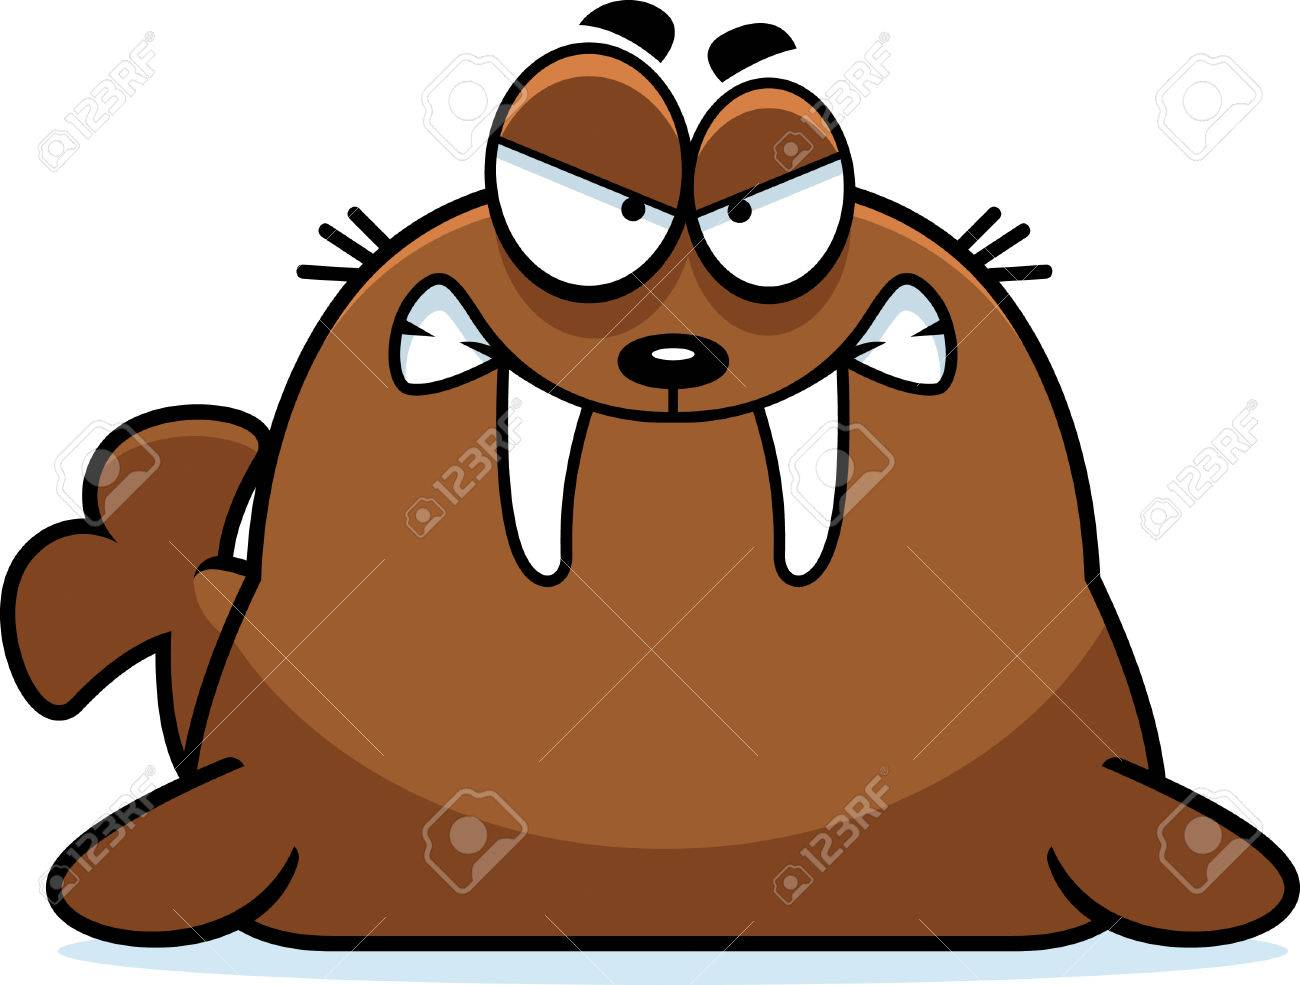 A cartoon illustration of a walrus looking angry..